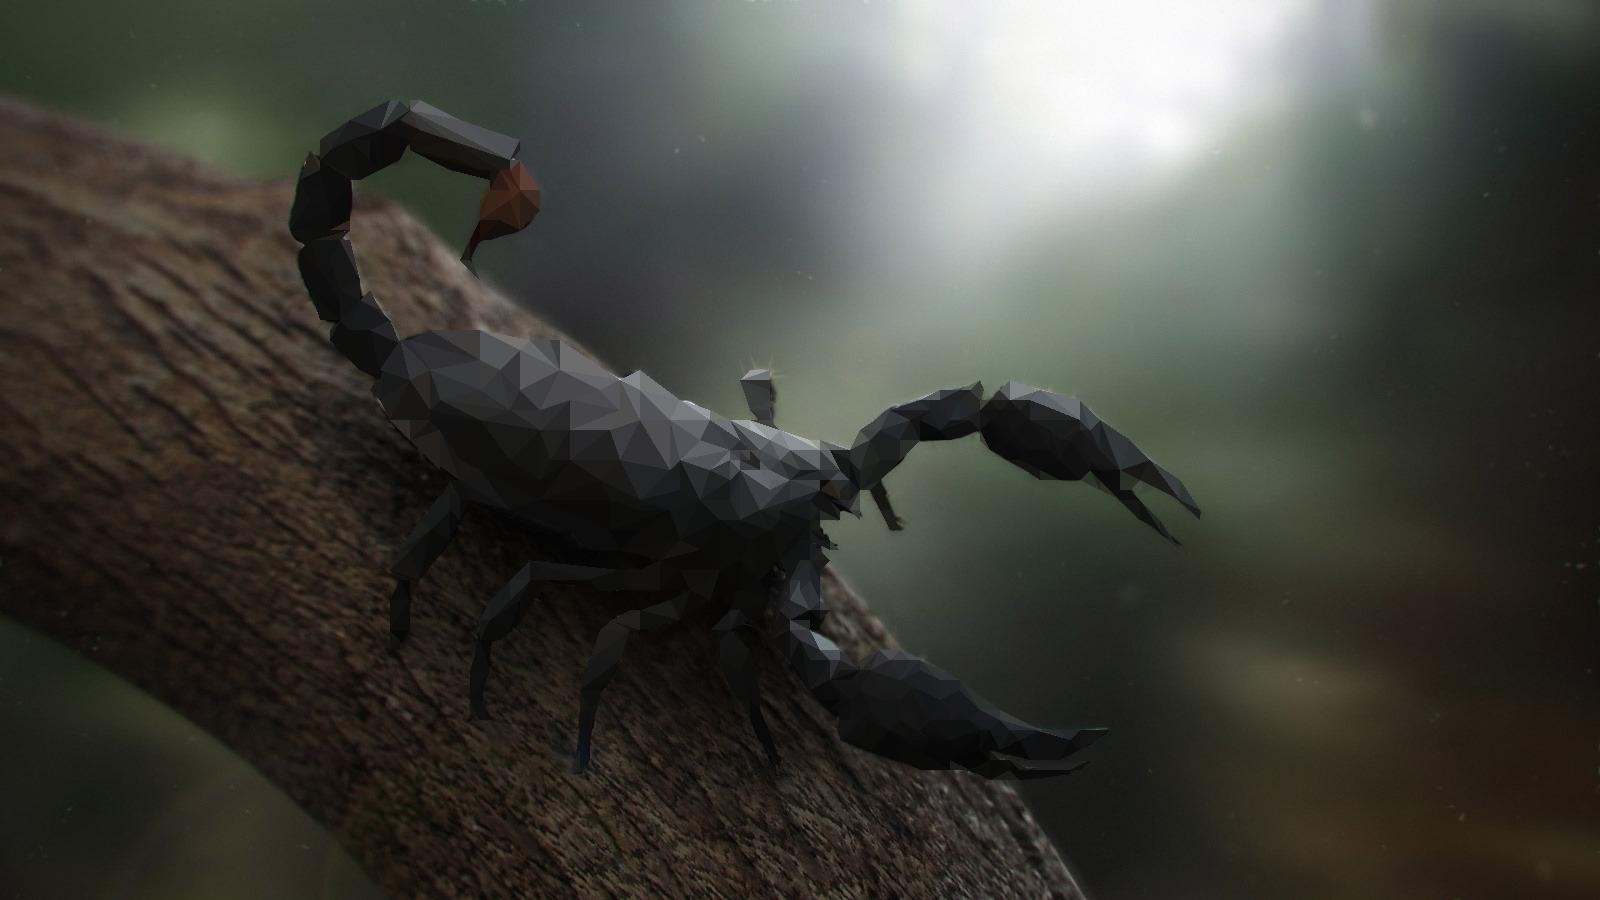 Nature Animals Trees Digital Art Scorpions Low Poly Branch Wood Depth Of Field 1600x900